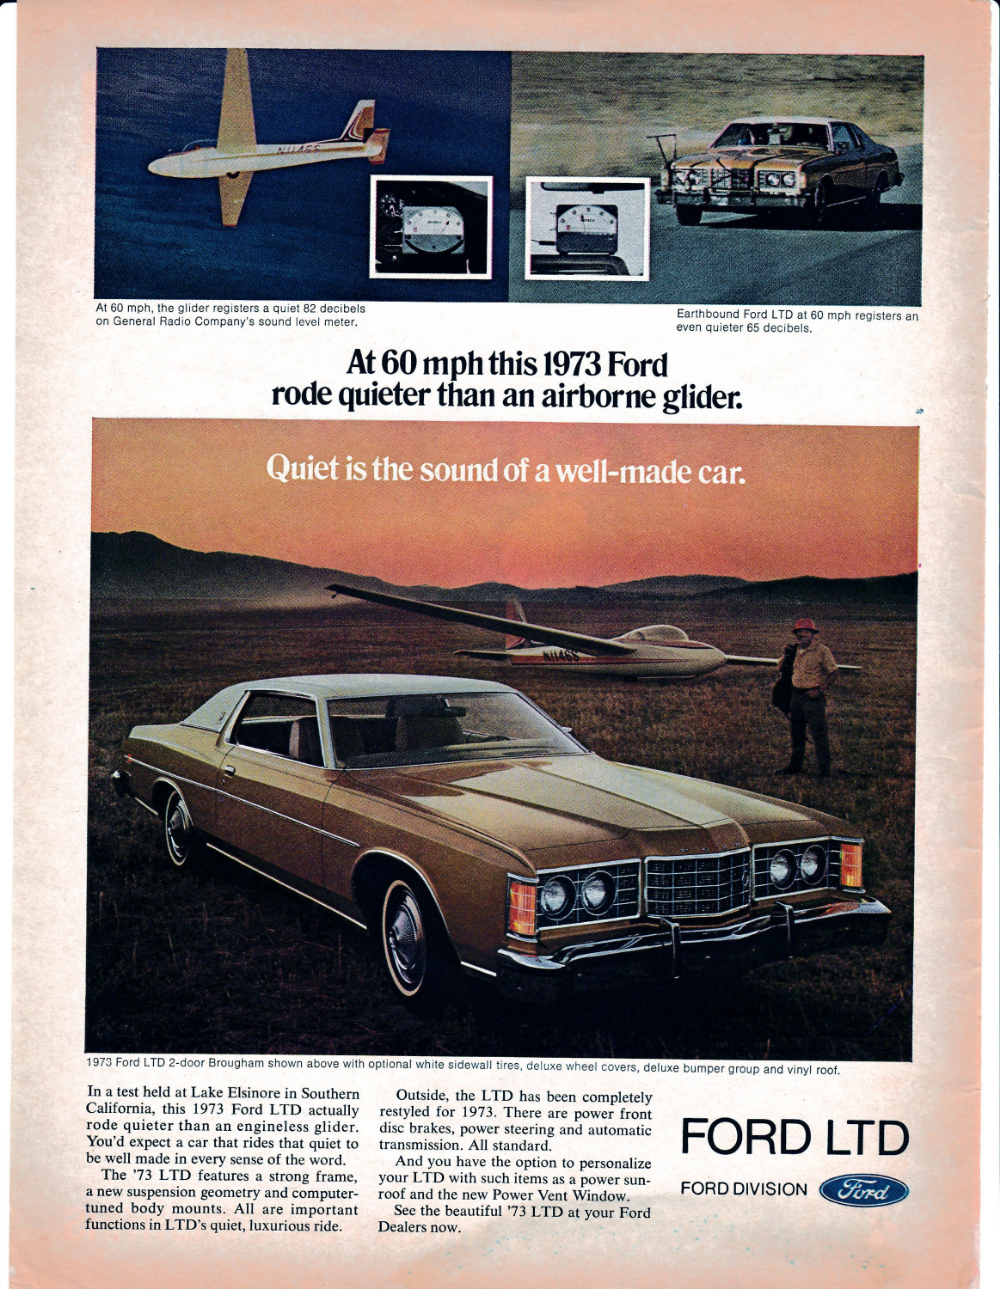 1973 Ford Ltd Quieter Then An Airborne Glider Lincoln Original Etsy Ford Ltd Ford Ford Motor Company